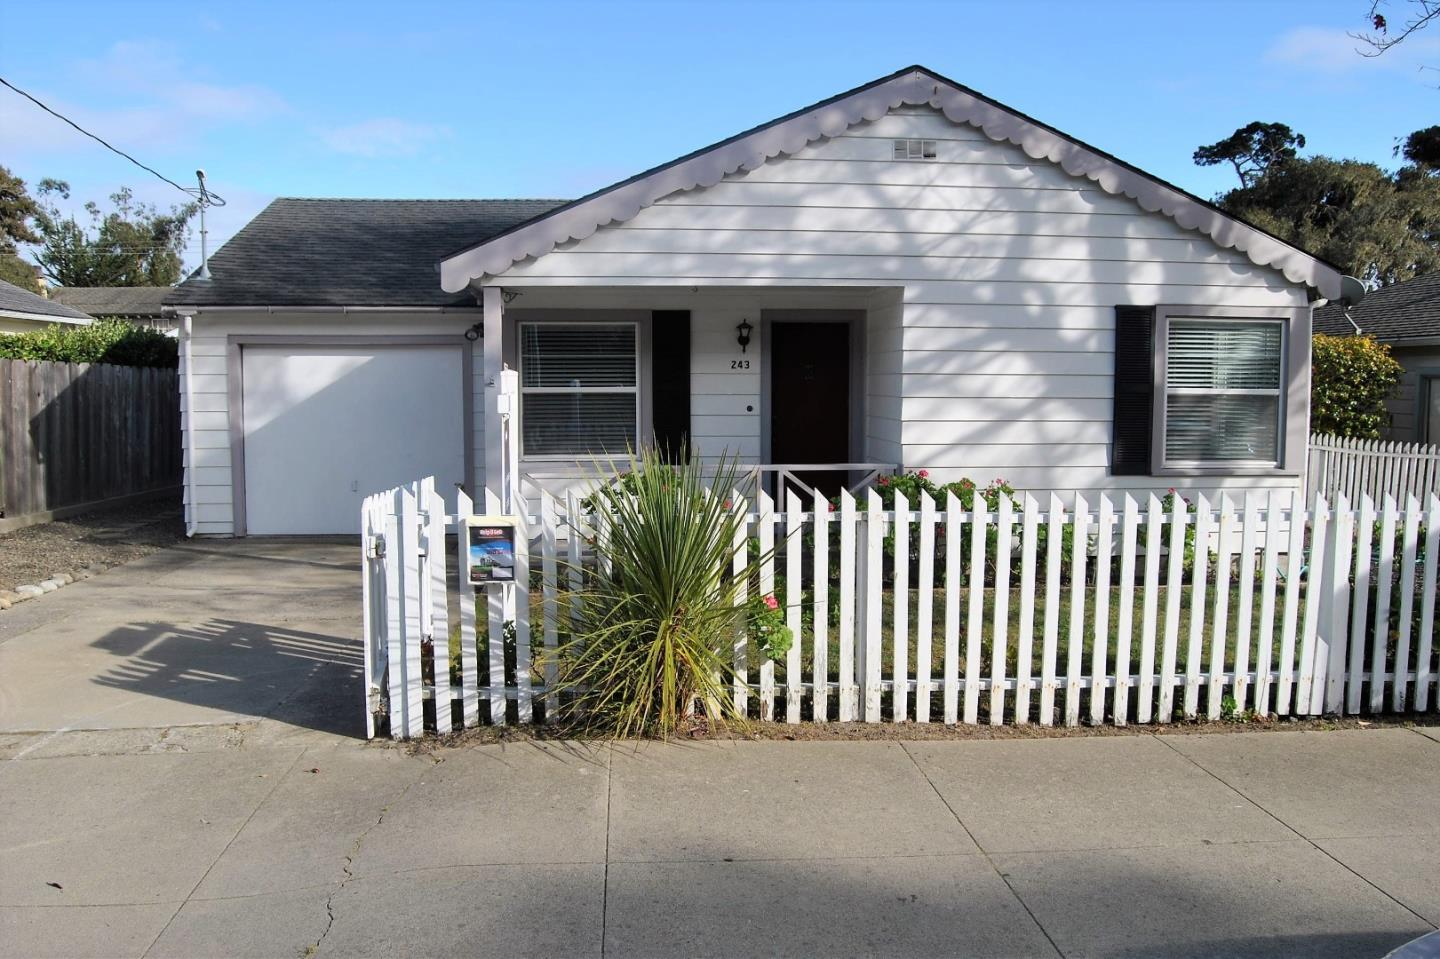 Property for sale at 243 17 Mile DR, Pacific Grove,  CA 93950